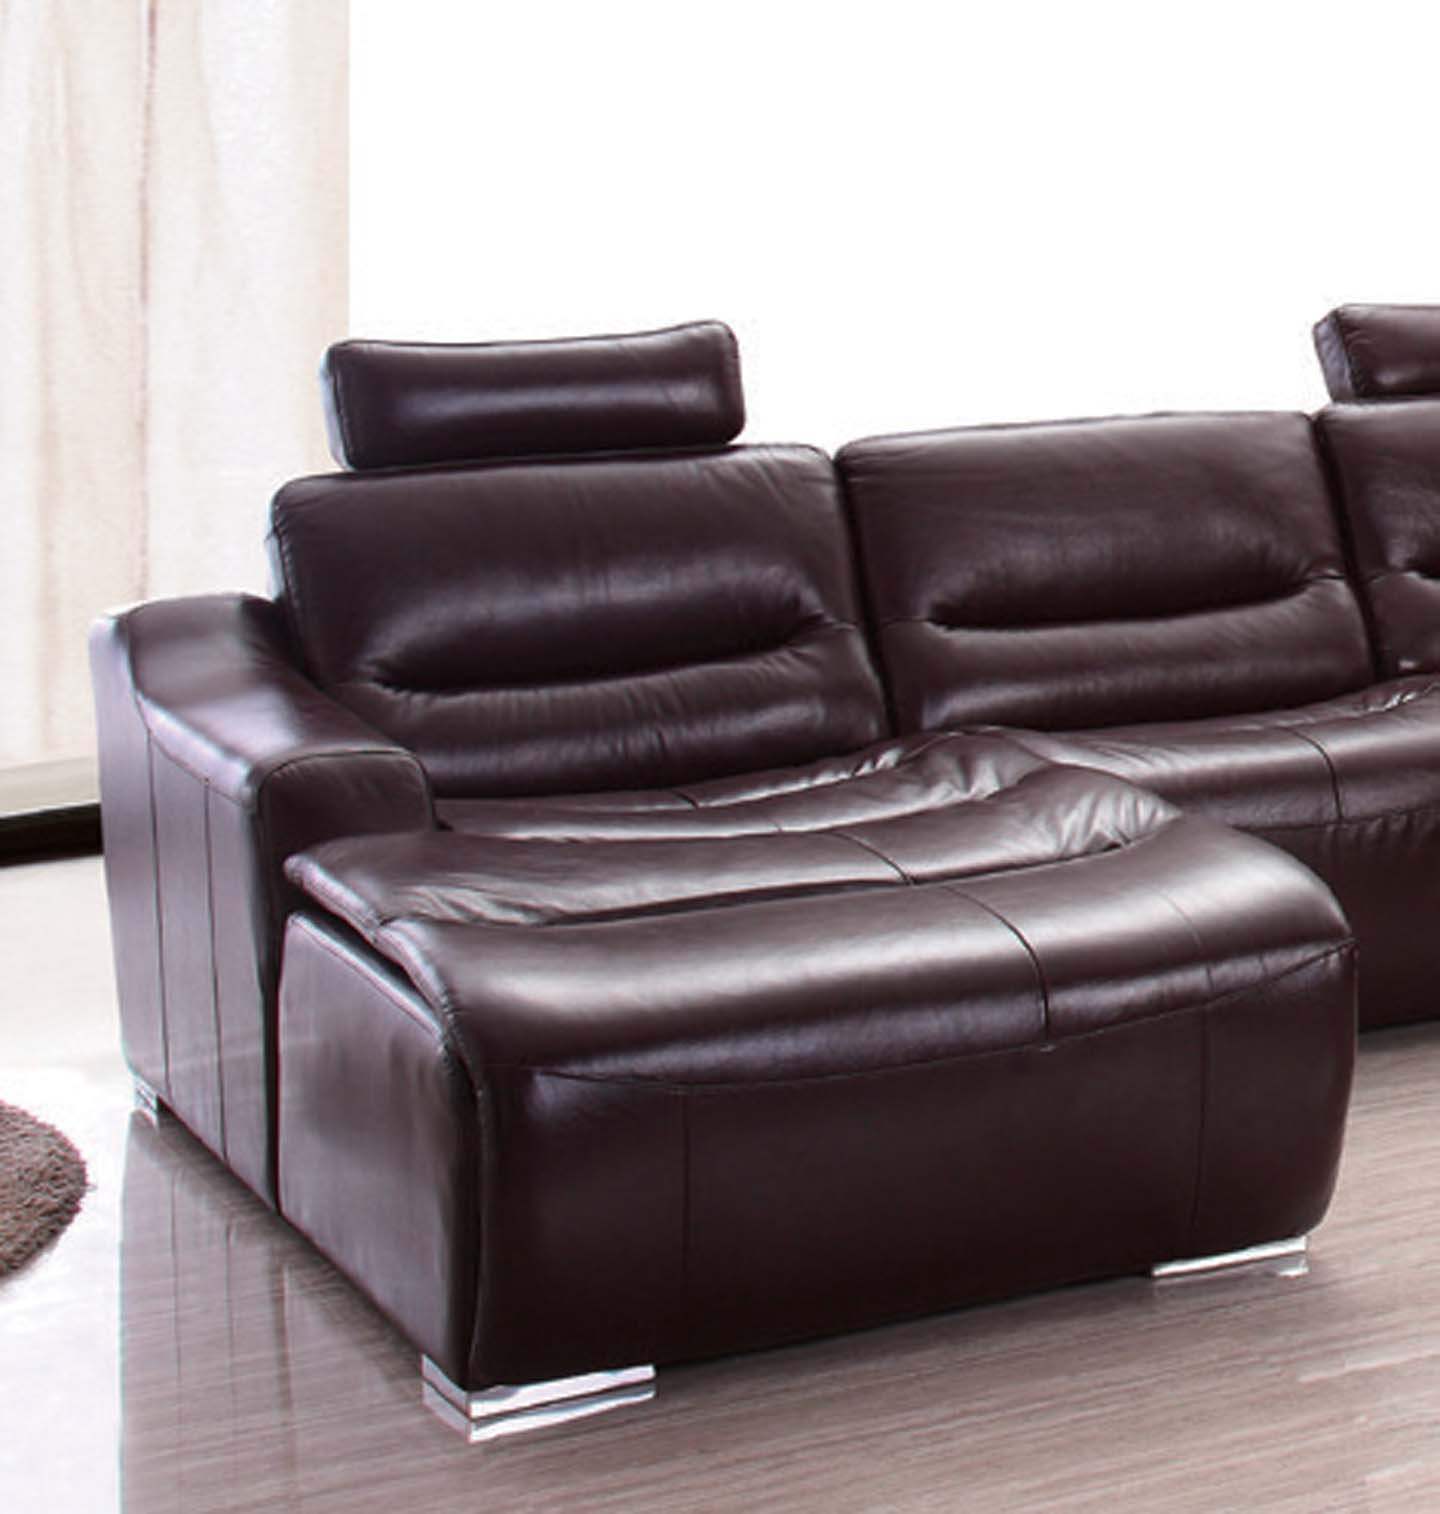 2144 Sectional Left w Recliner Leather Sectionals Living Room